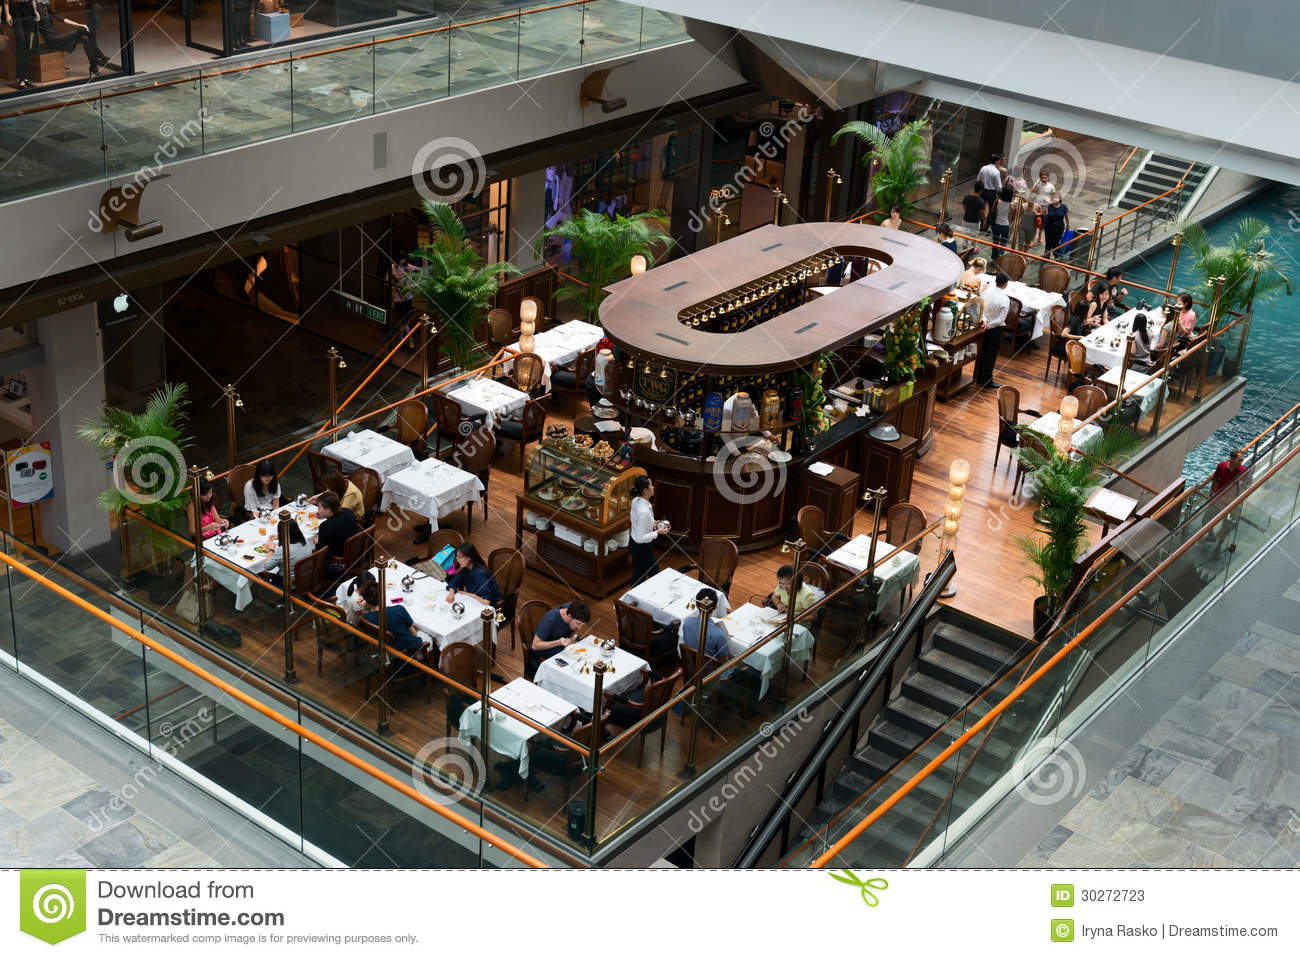 Marina Bay Sands Food Court Review